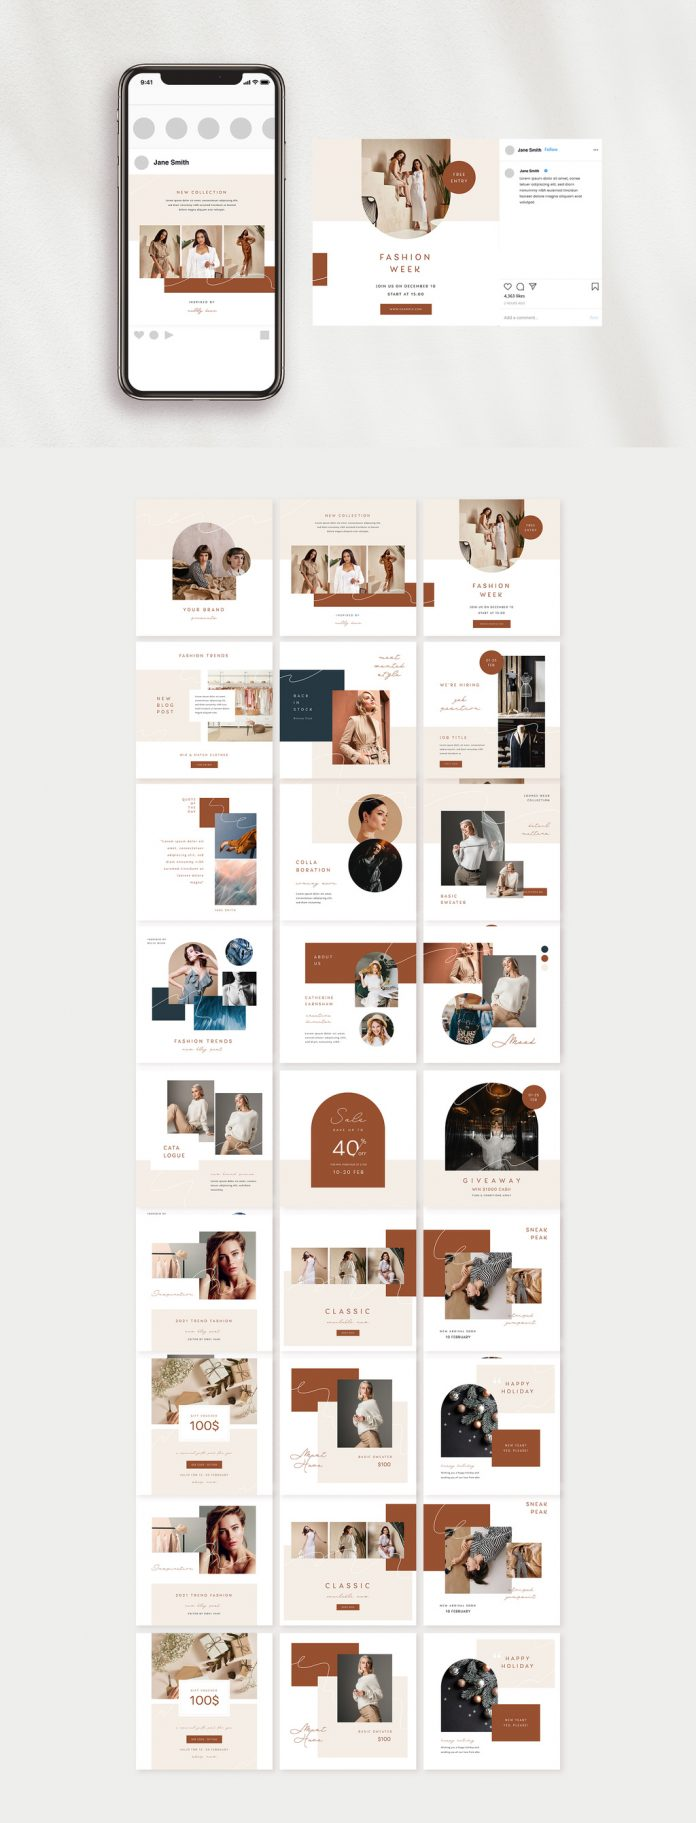 21 Fashion-Inspired Social Media Puzzle-Style Templates